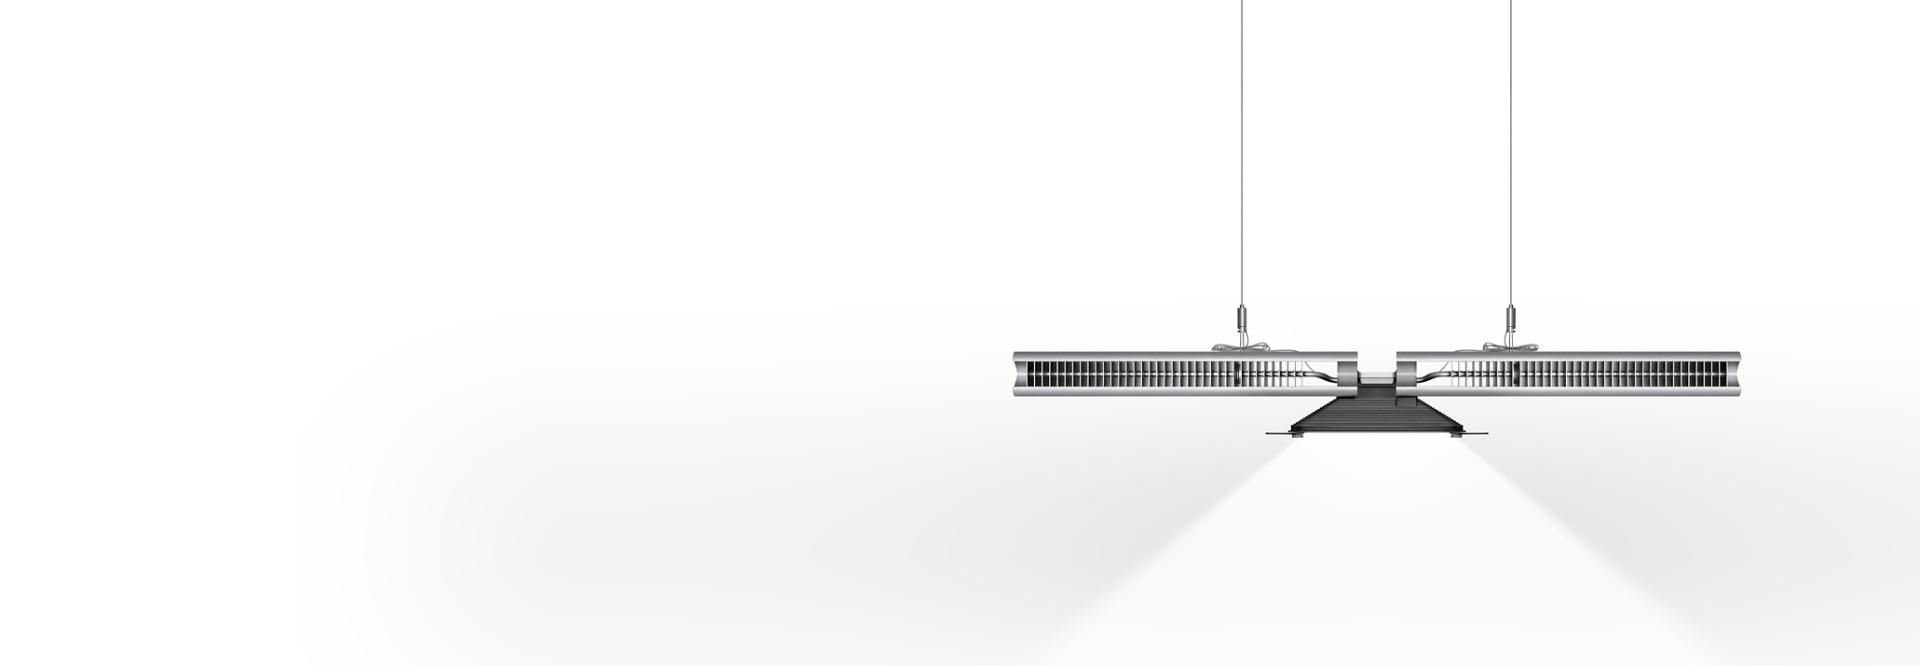 Dyson Cu-Beam Down suspended light